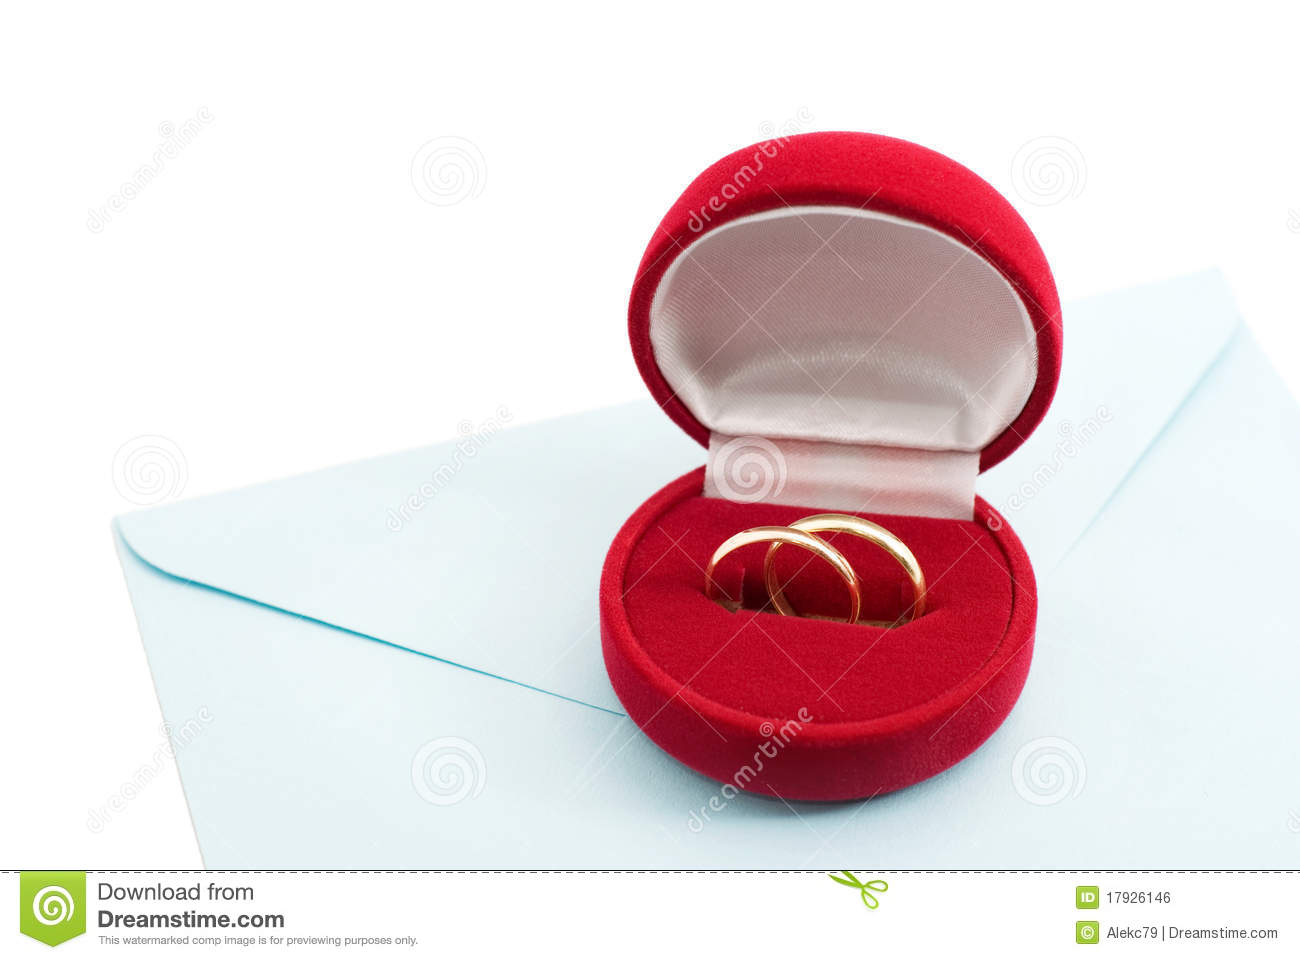 Wedding Ring Gift Box : wedding-ring-gift-box-mail-envelope-17926146.jpg